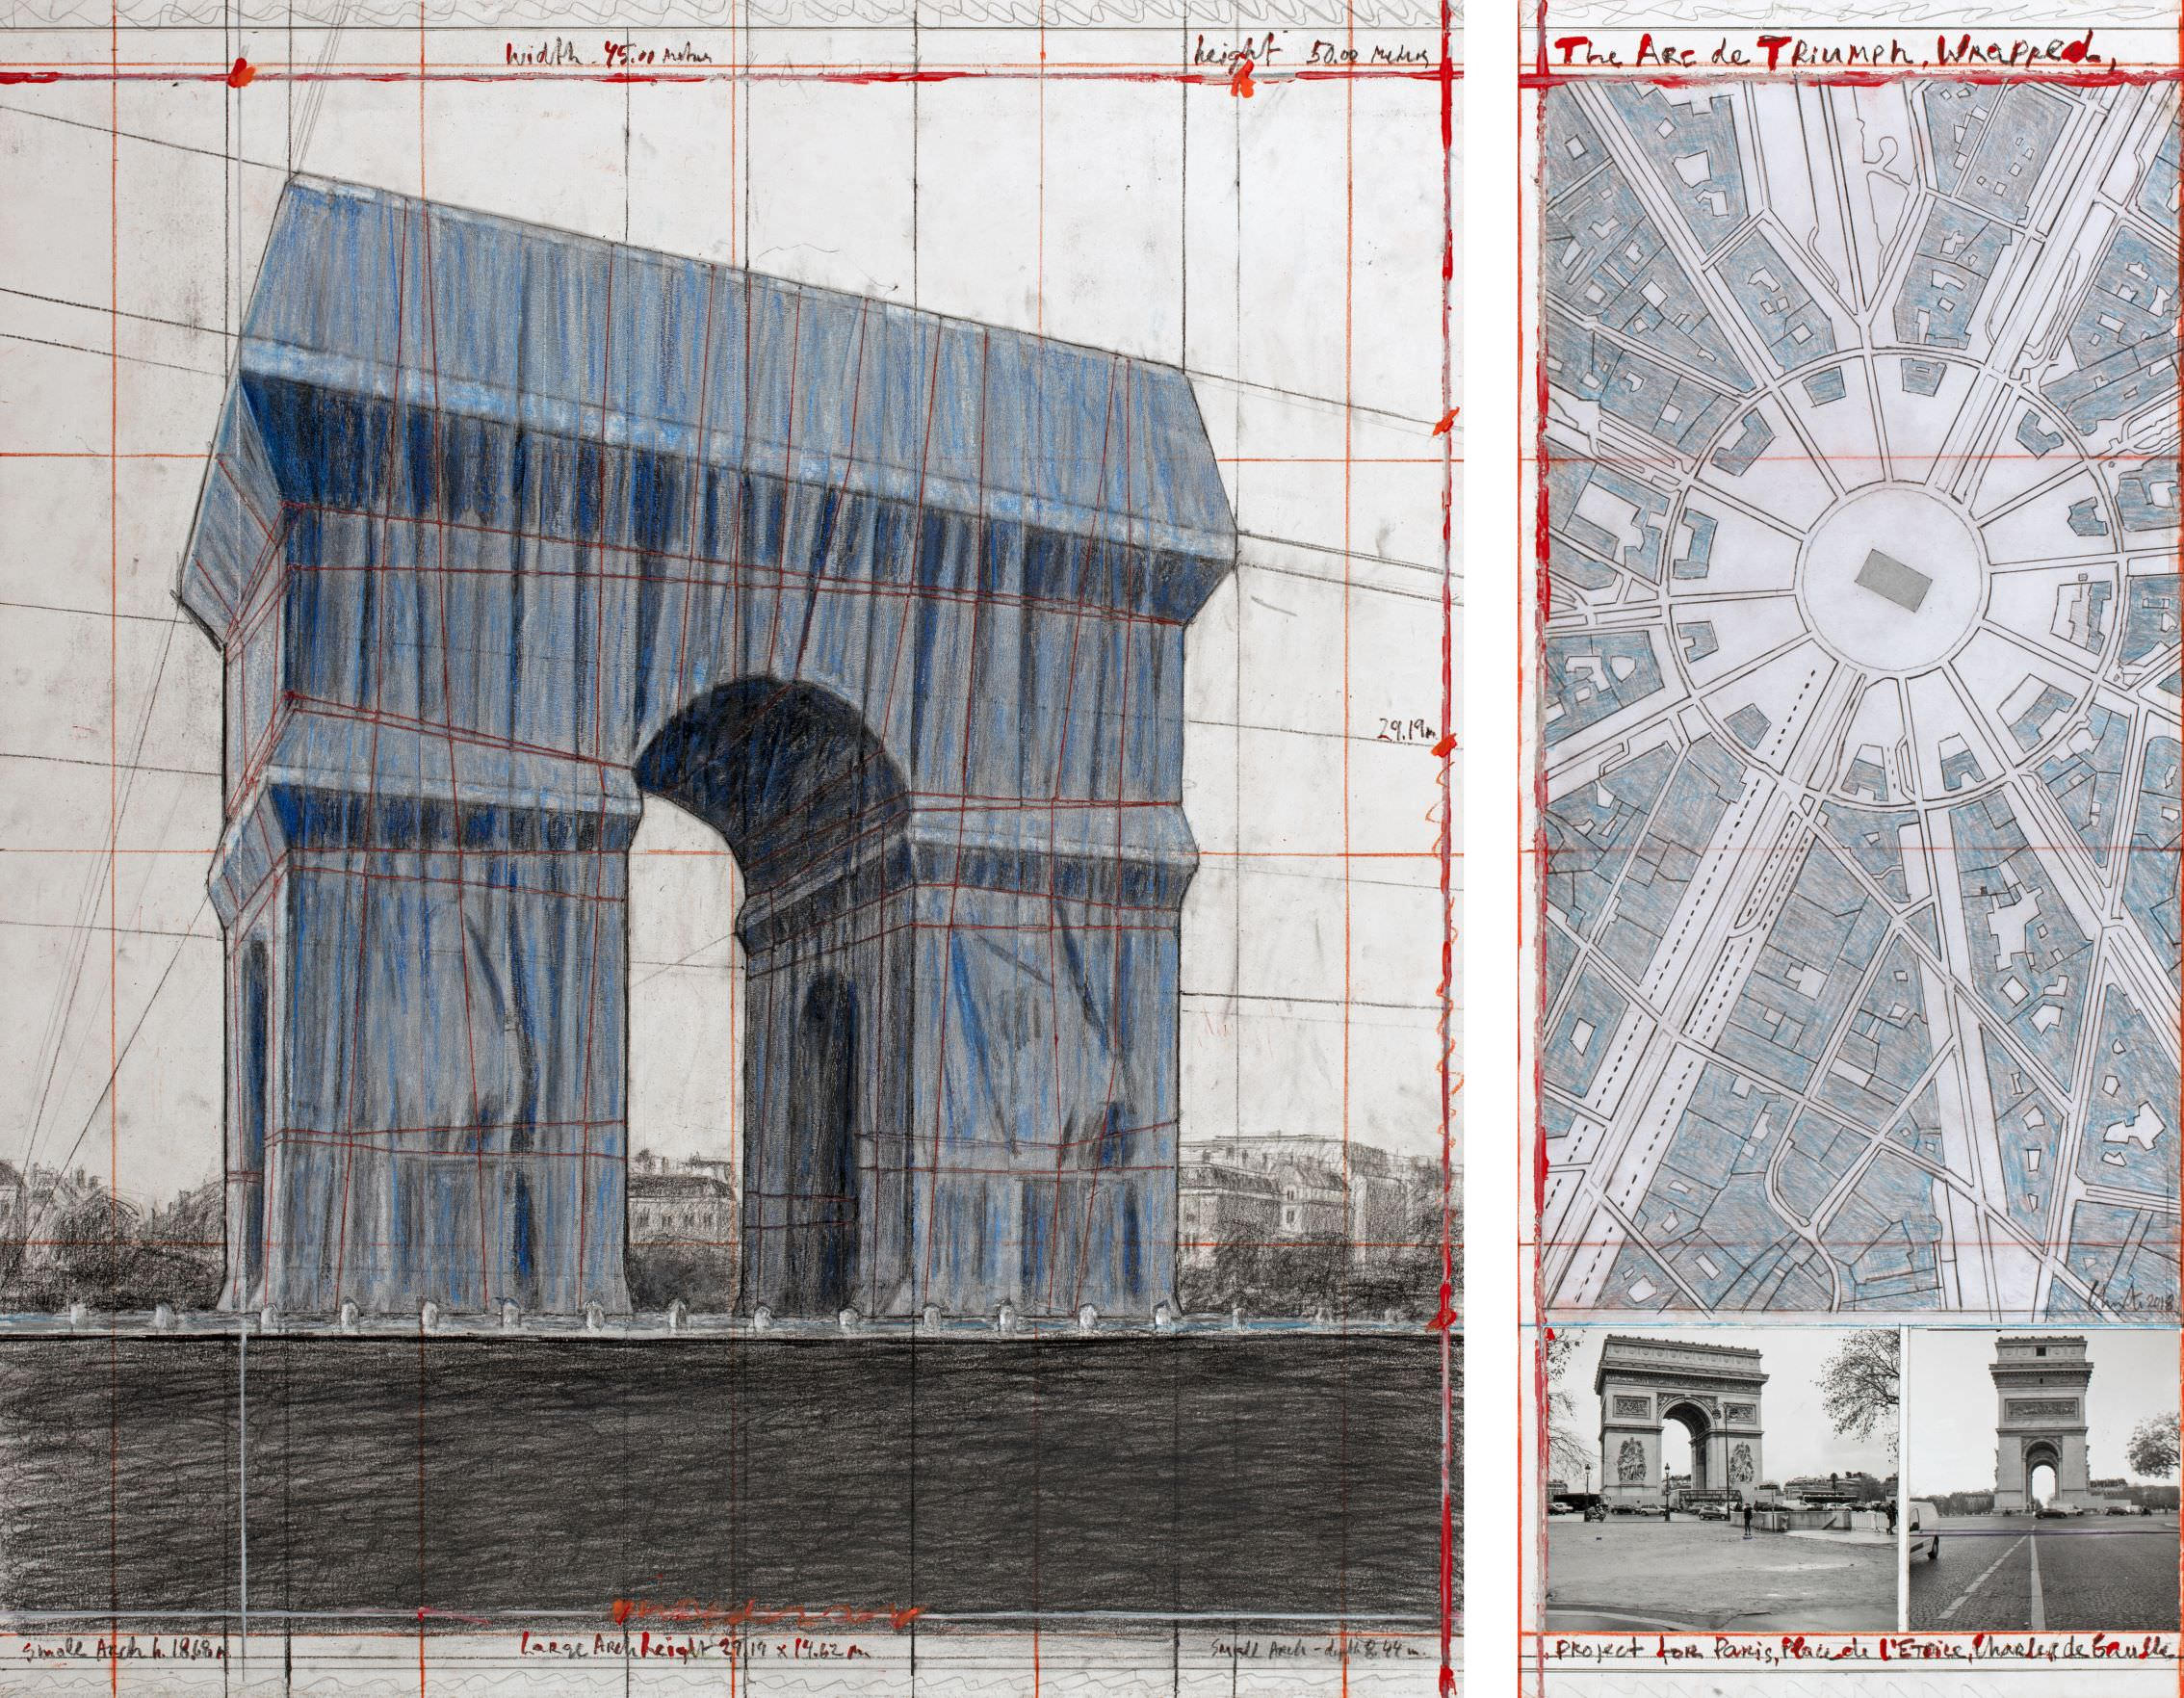 "Christo, The Arc de Triumph, Wrapped, Project for Paris, Place de l'Etoile, Charles de Gaulle, Collage 2018 in two parts 30 1/2 x 26 1/4"" and 30 1/2 x 12"" (77.5 x 66.7 cm and 77.5 x 30.5 cm) Pencil, charcoal, wax crayon, fabric, twine, enamel paint, photograph by Wolfgang Volz, hand-drawn map and tape Photo: André Grossmann © 2018 Christo"